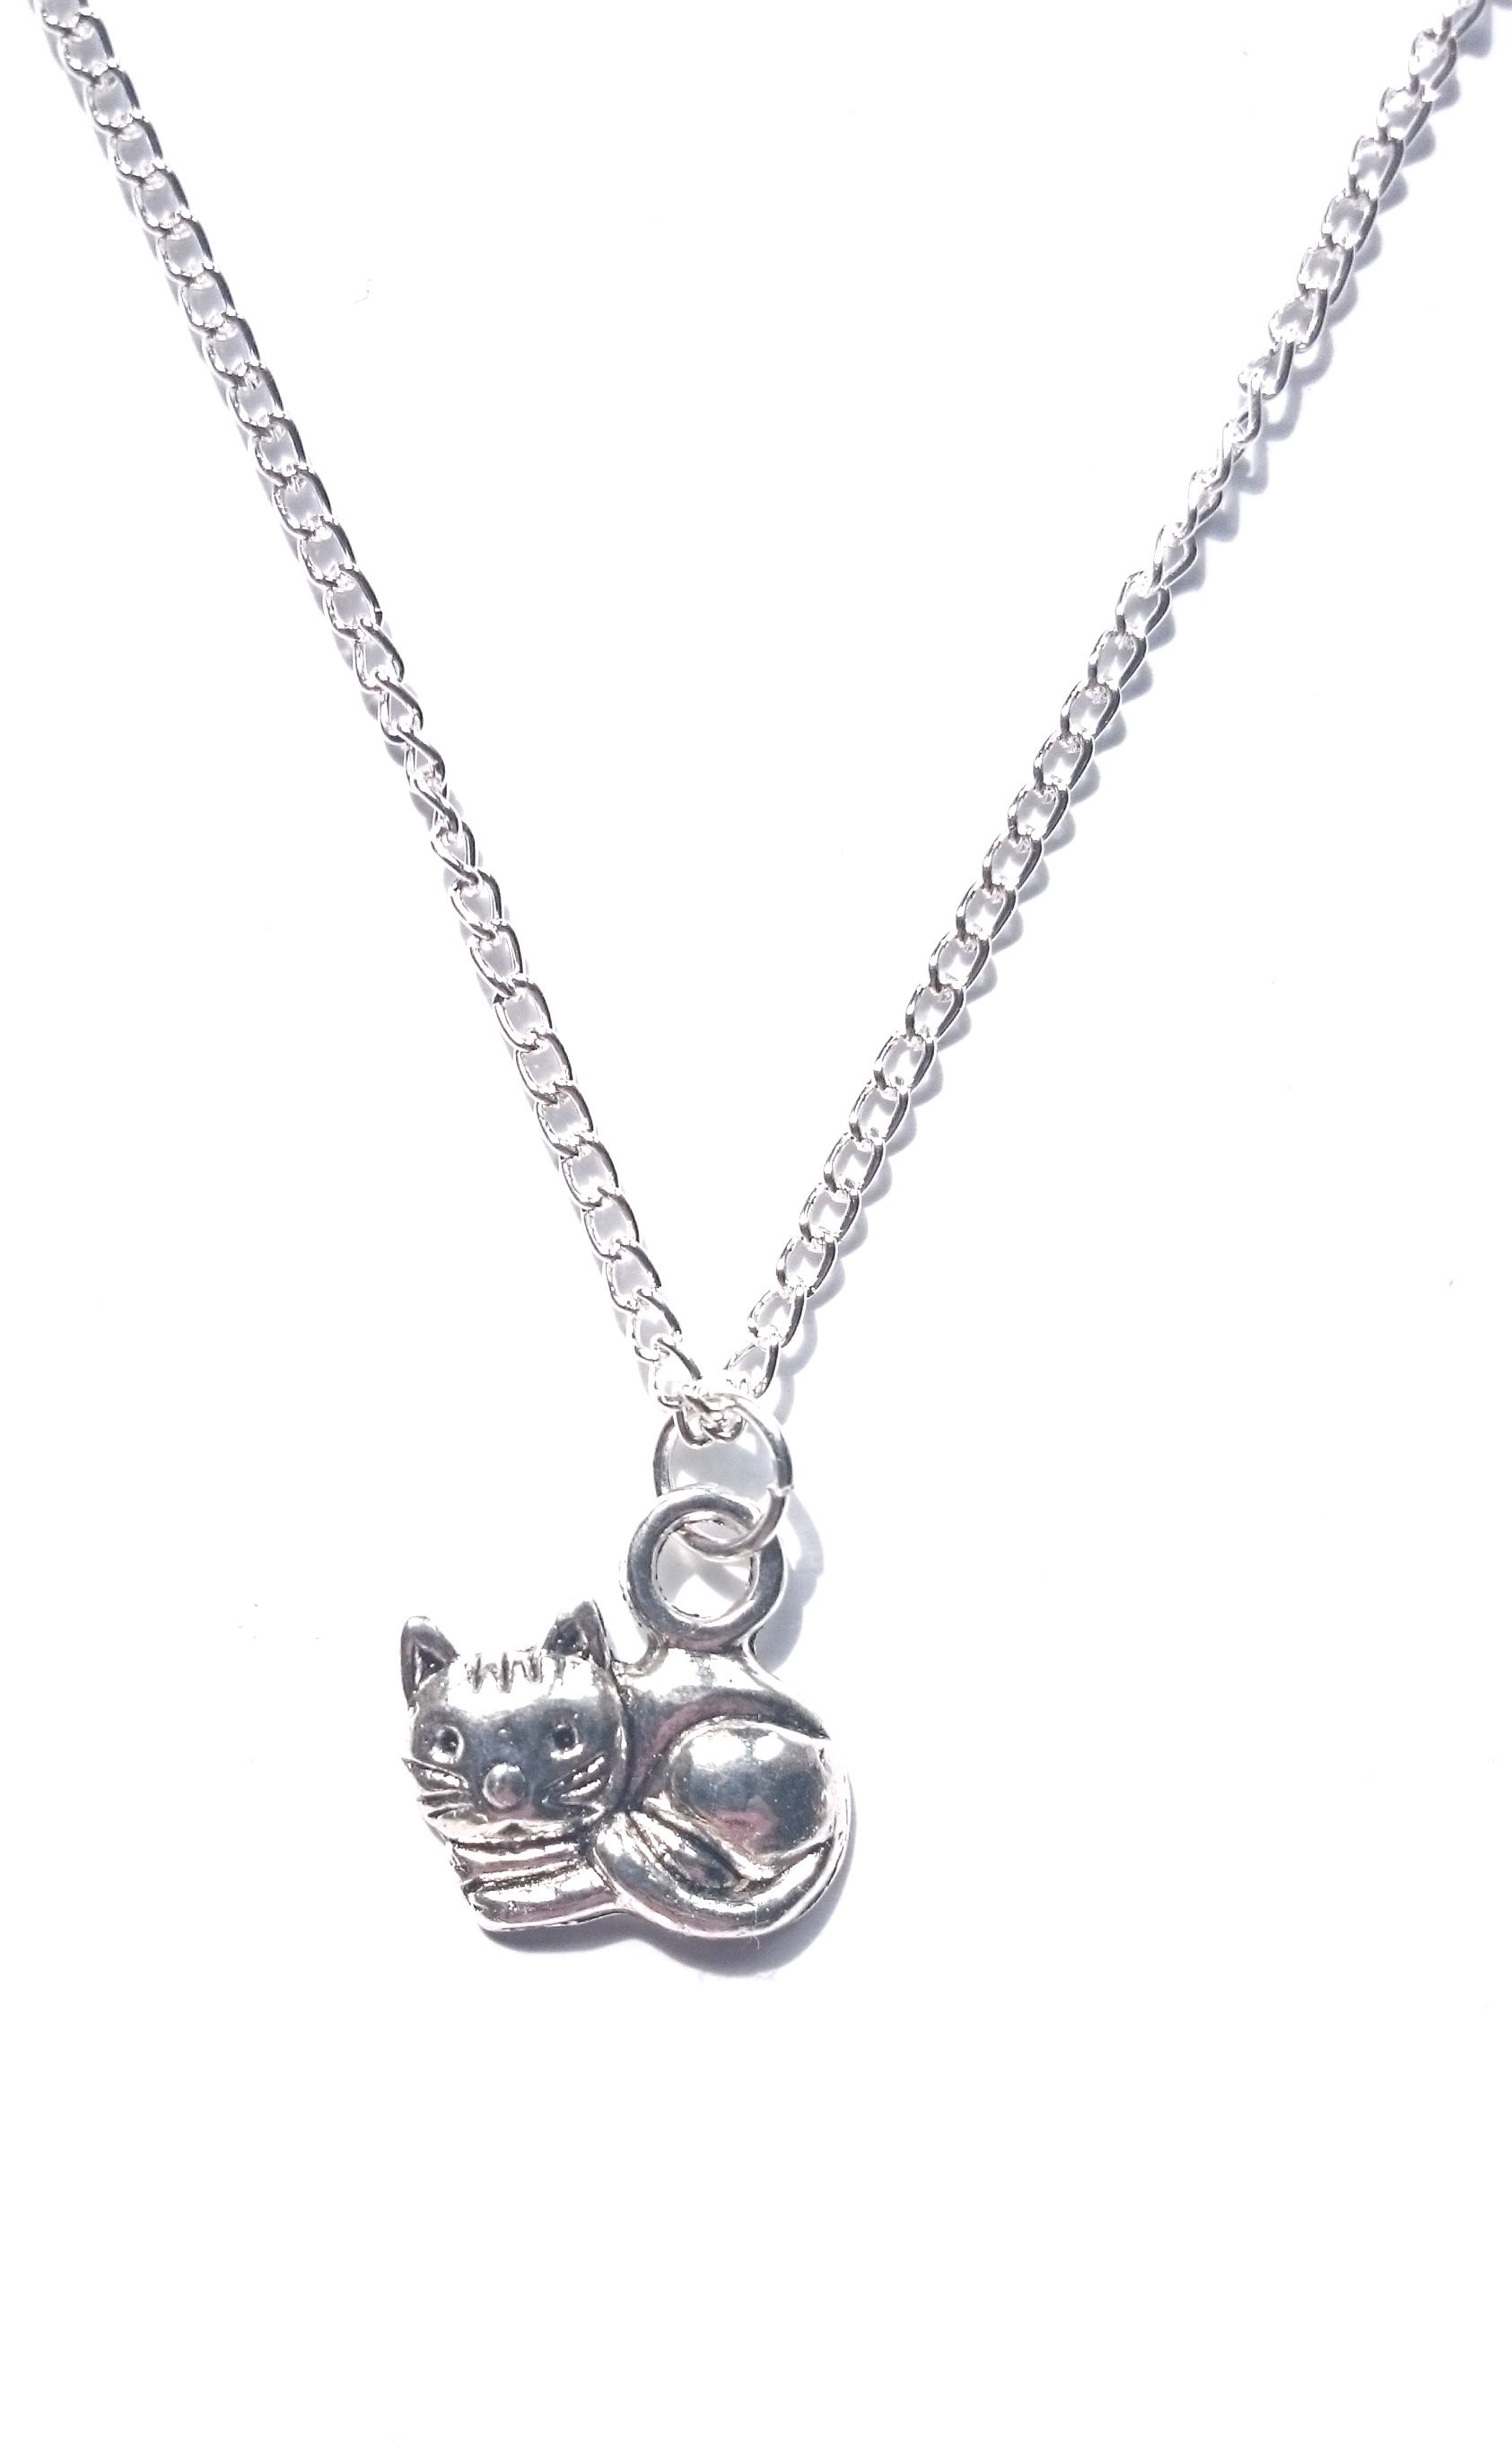 jewellery cat sophisticated walmart ip com necklace jewelry